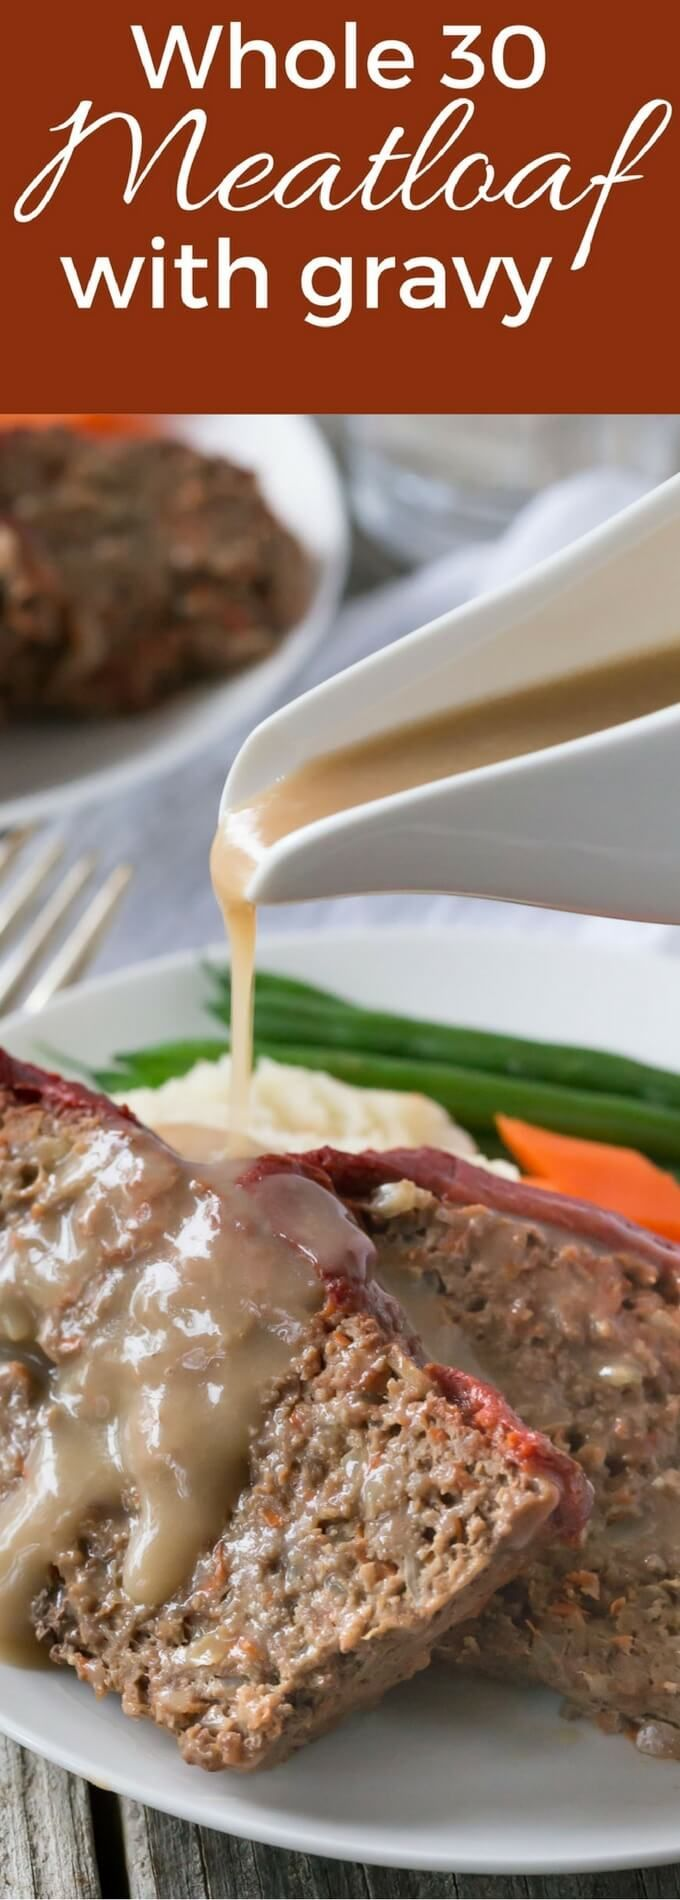 Whole 30 Meatloaf recipe with tasty gravy style sauce! You can use turkey, beef, or pork and make meatloaf muffins too, it's also gluten free and paleo.